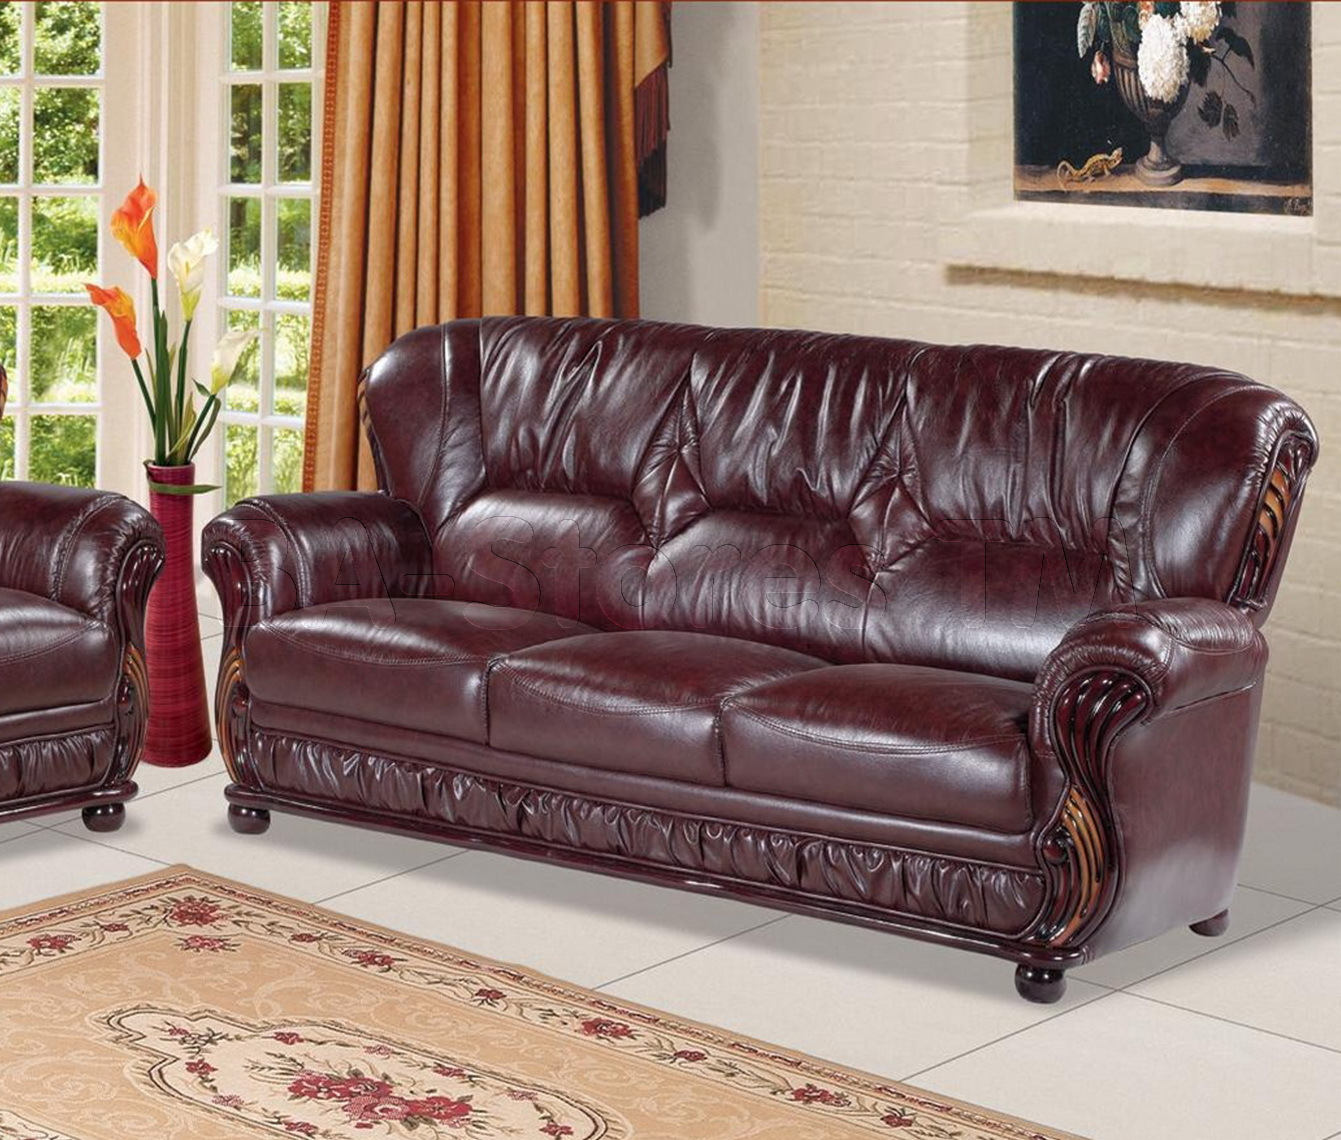 burgundy leather sofa and loveseat fix a as seen on tv 2017 sofas warm inviting living room